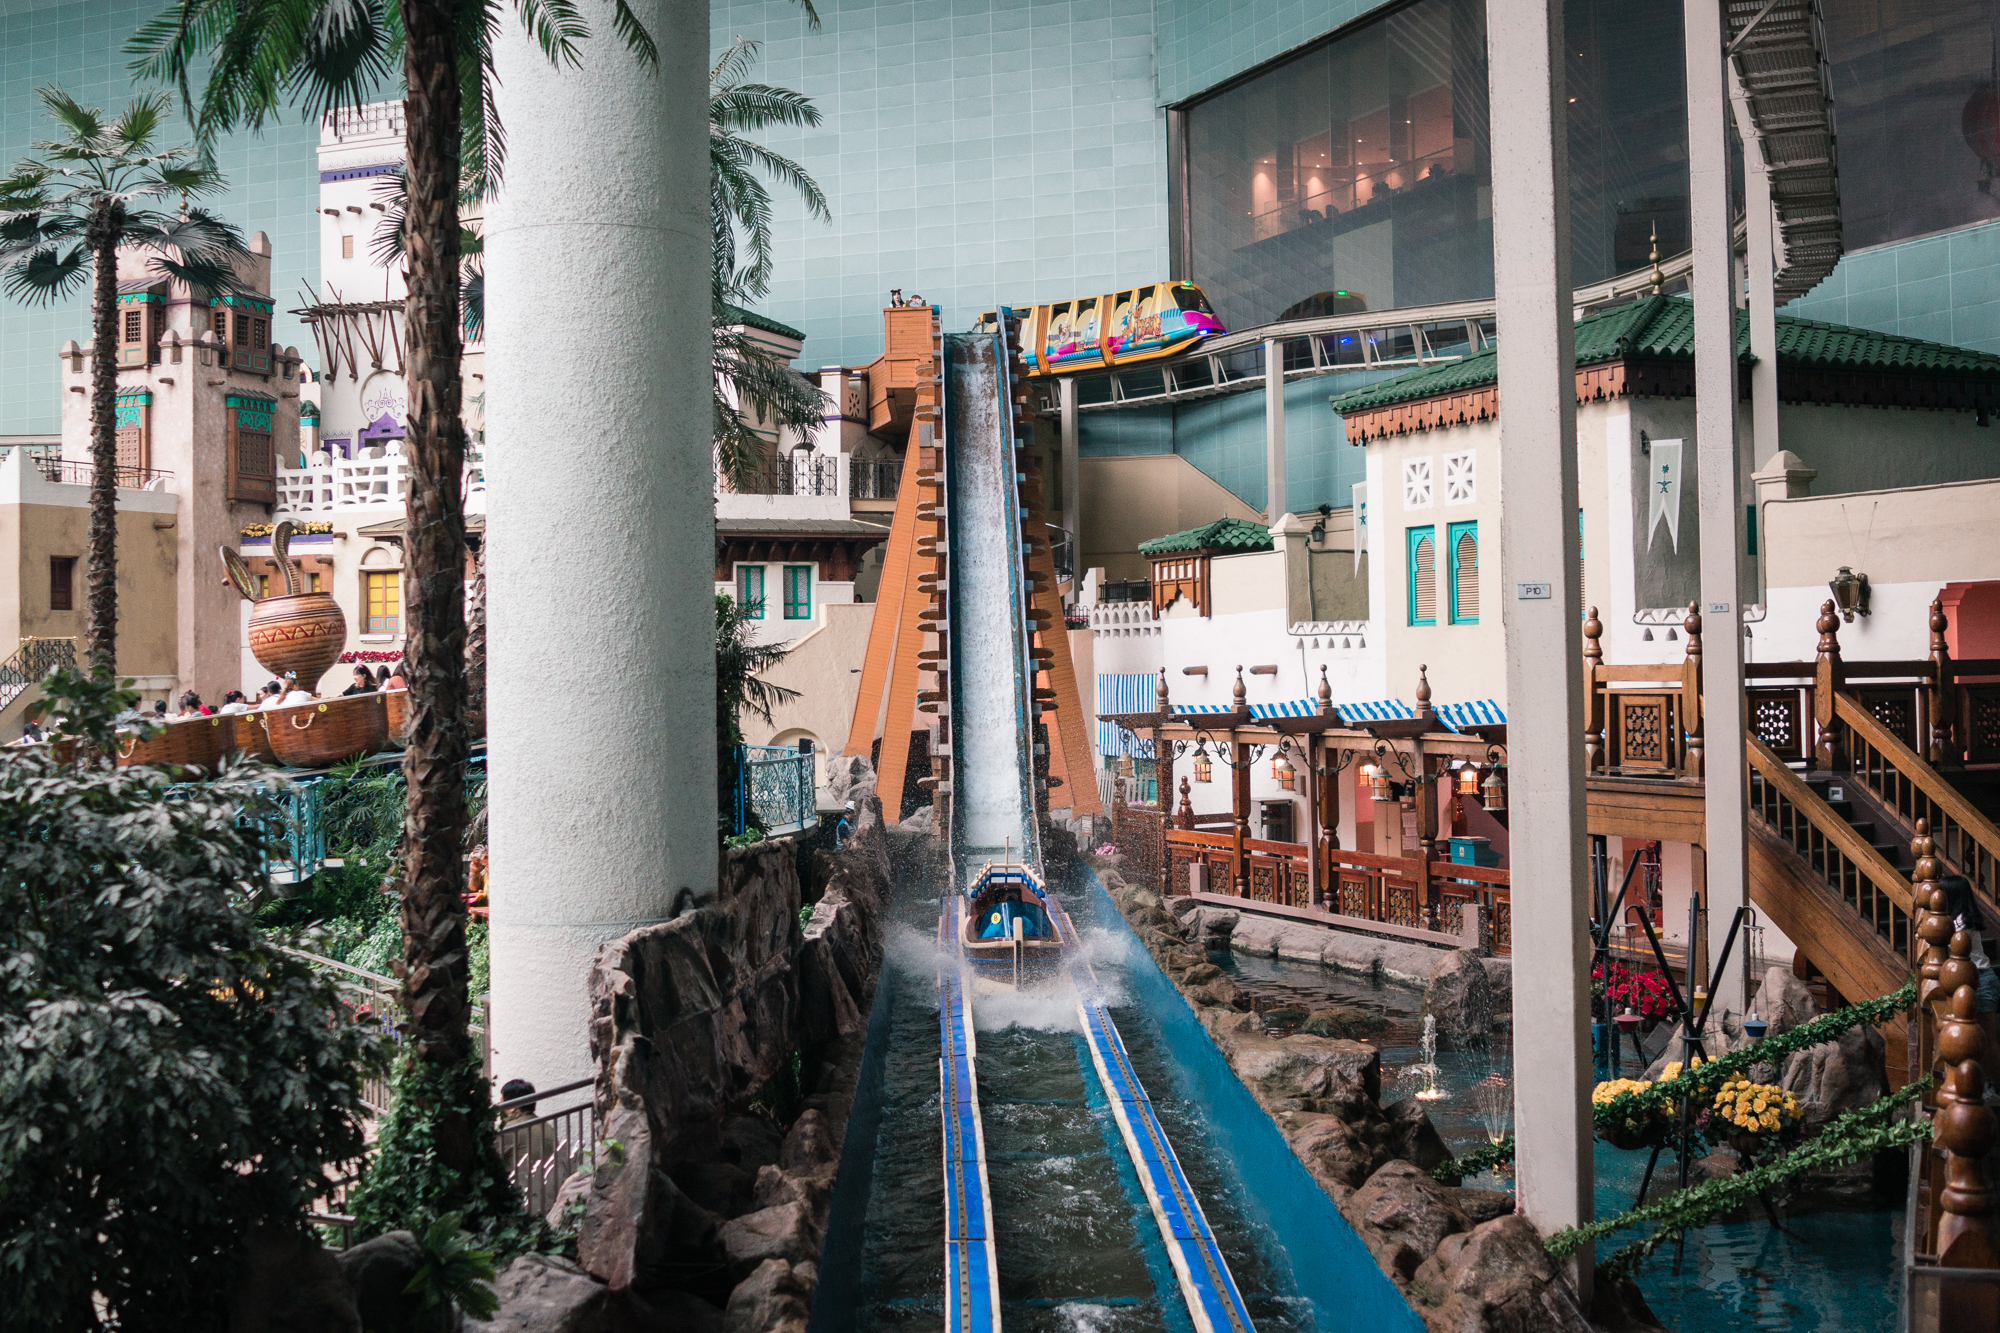 Flume Ride at Lotte World